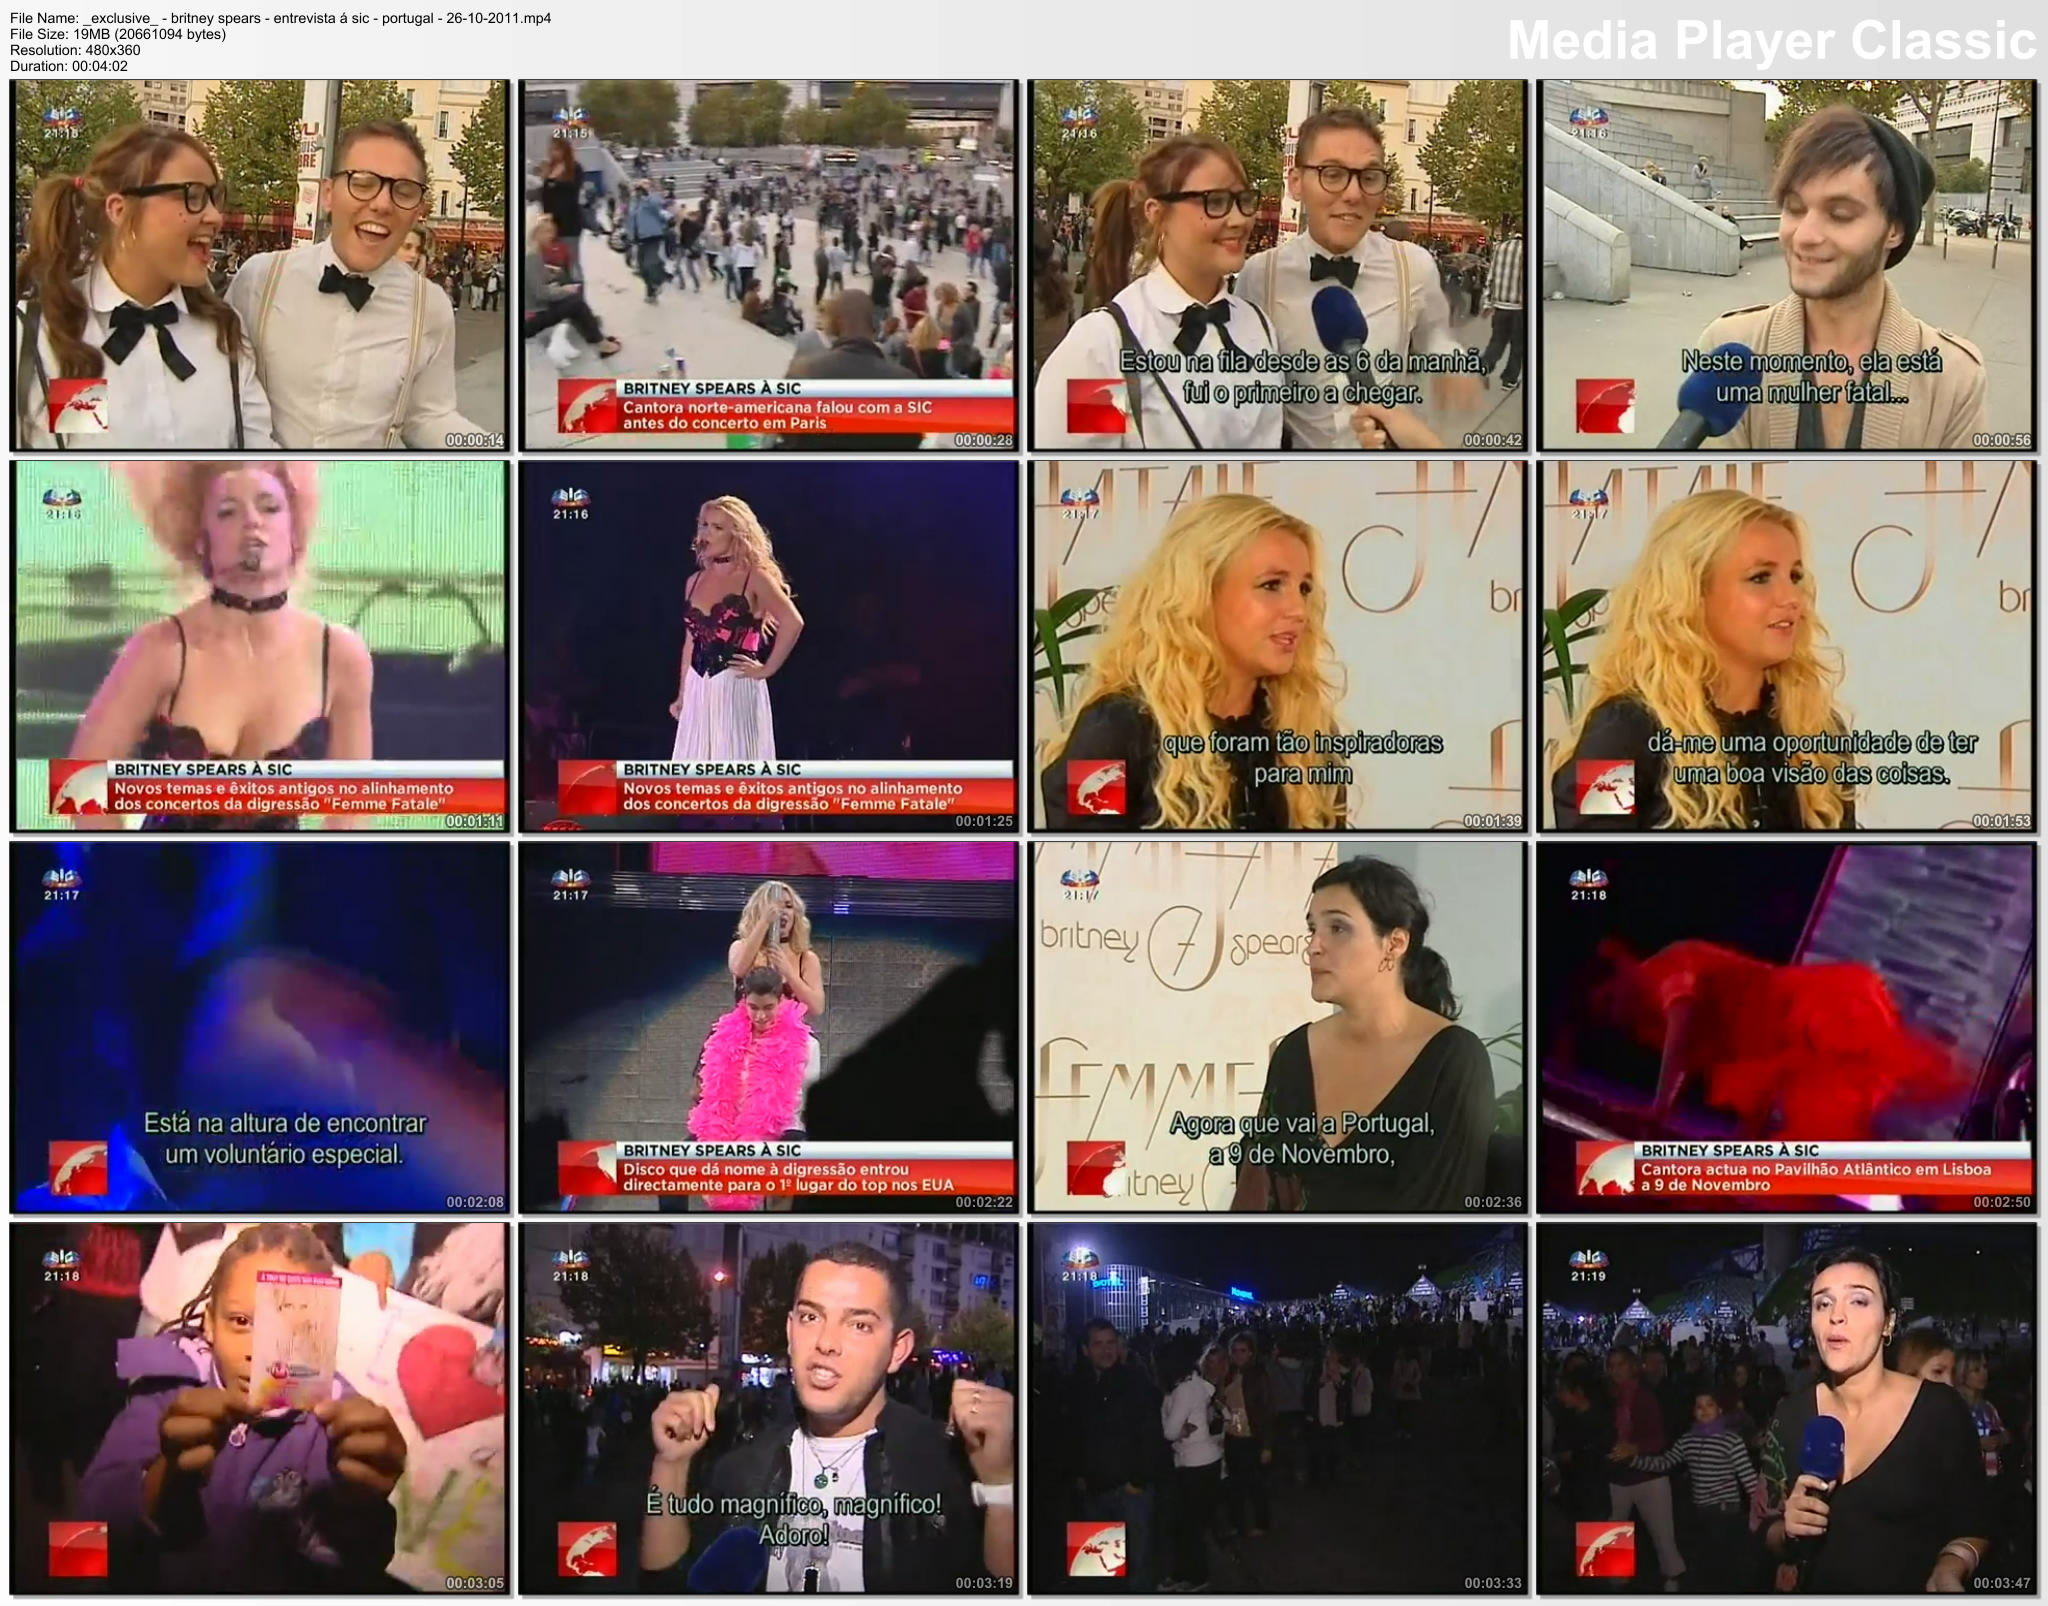 737064257__exclusive__britneyspears_entrevistasic_portugal_26_10_2011.mp4_thumbs_2011.10.27_20.37.53_122_753lo.jpg